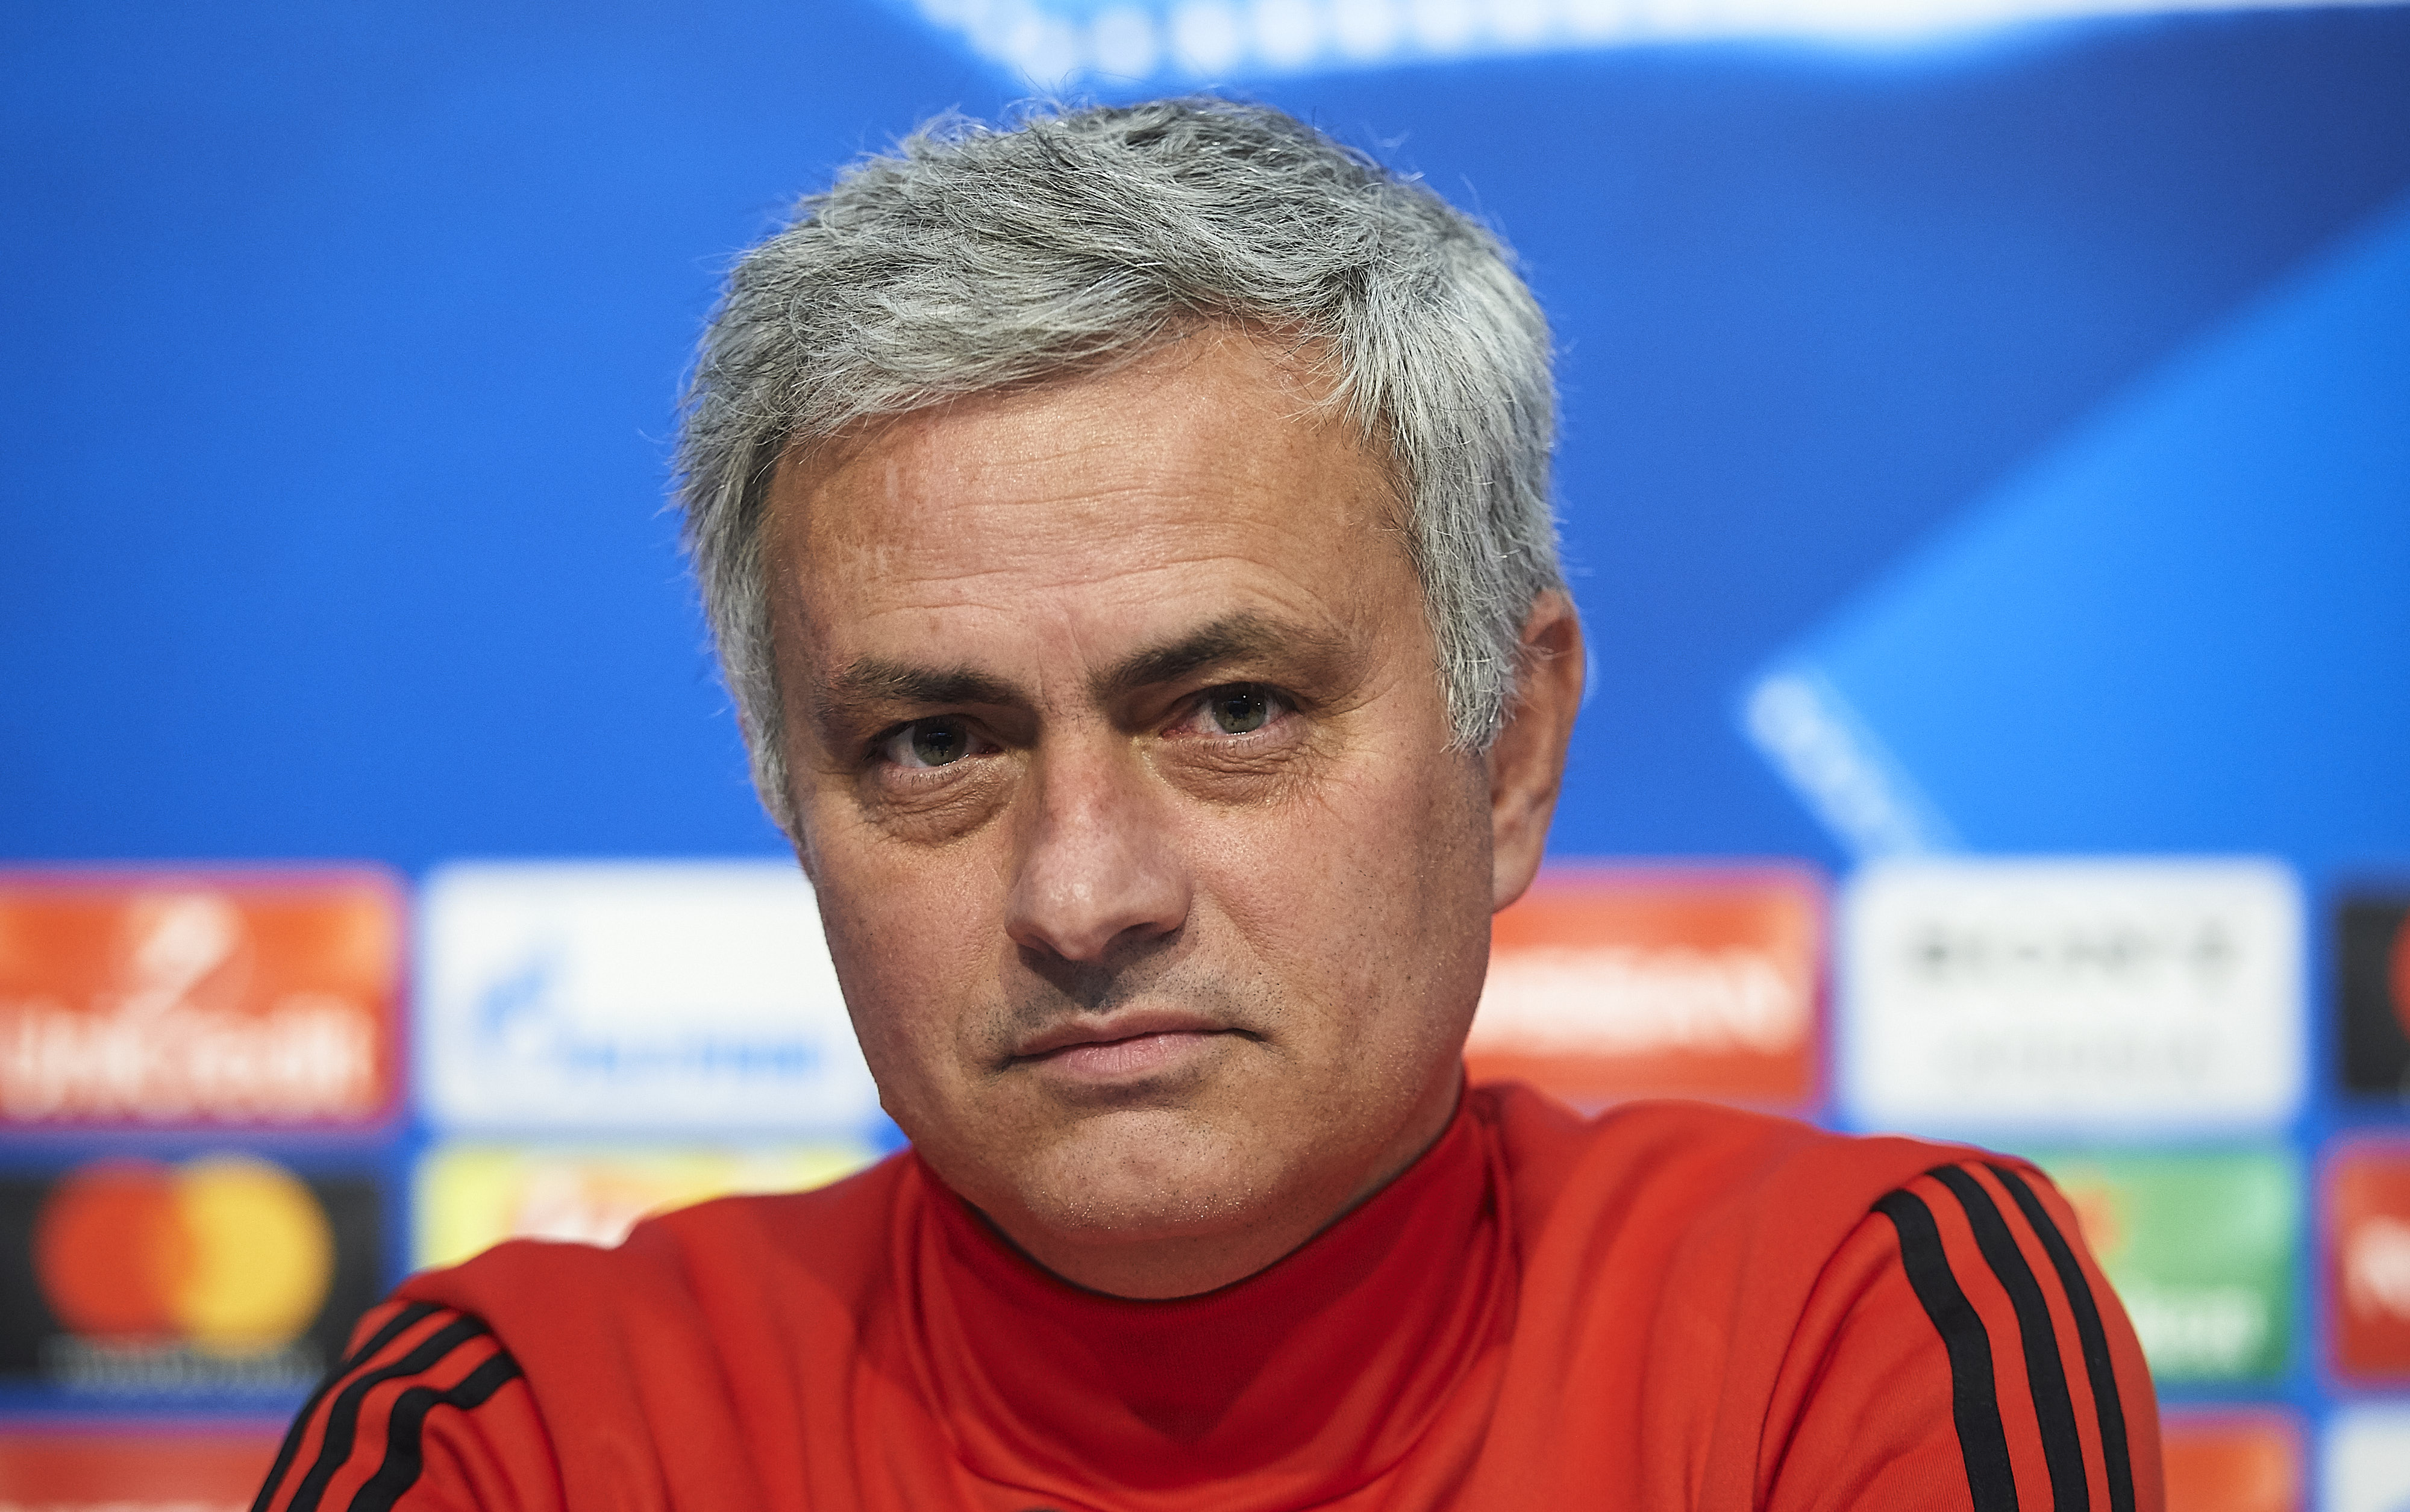 Jose Mourinho in a press conference - Manchester United - Premier League